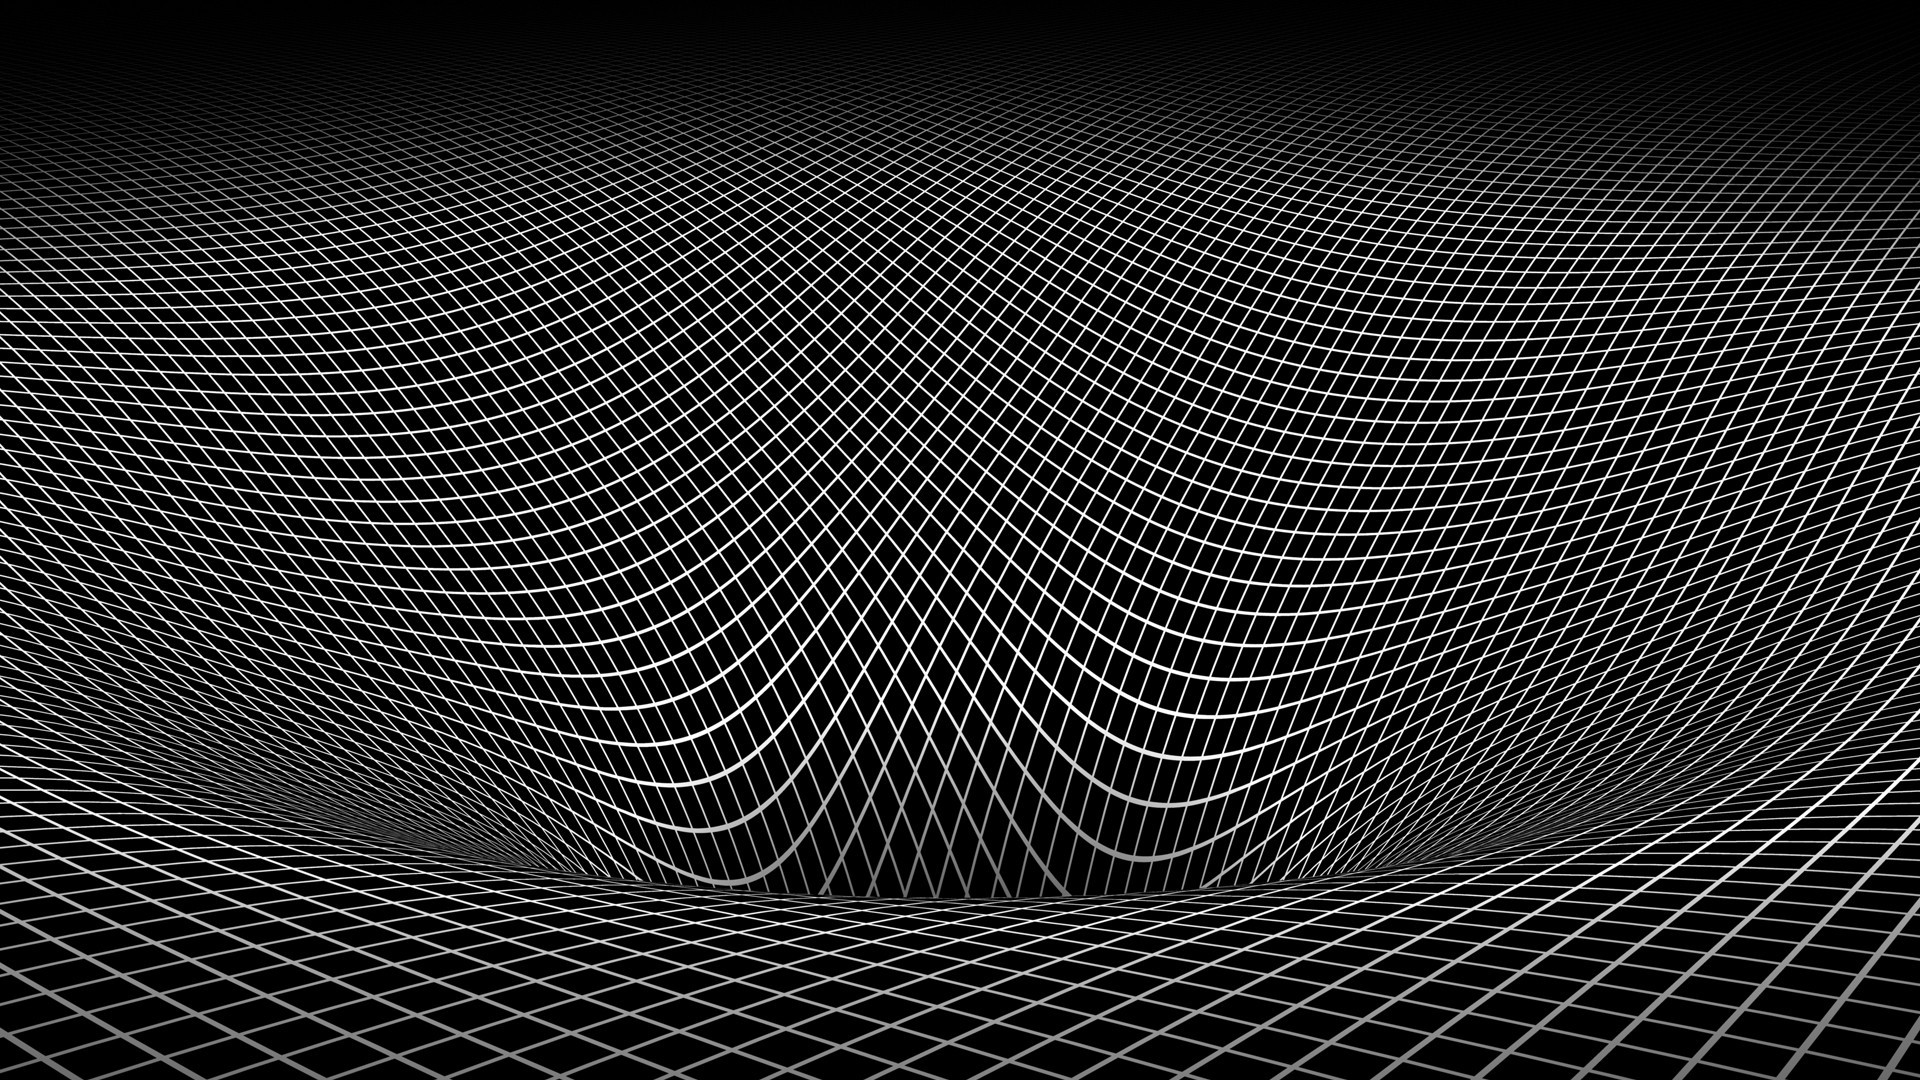 Abstract black and white gravity hole 3d warped wallpaper 1920x1080